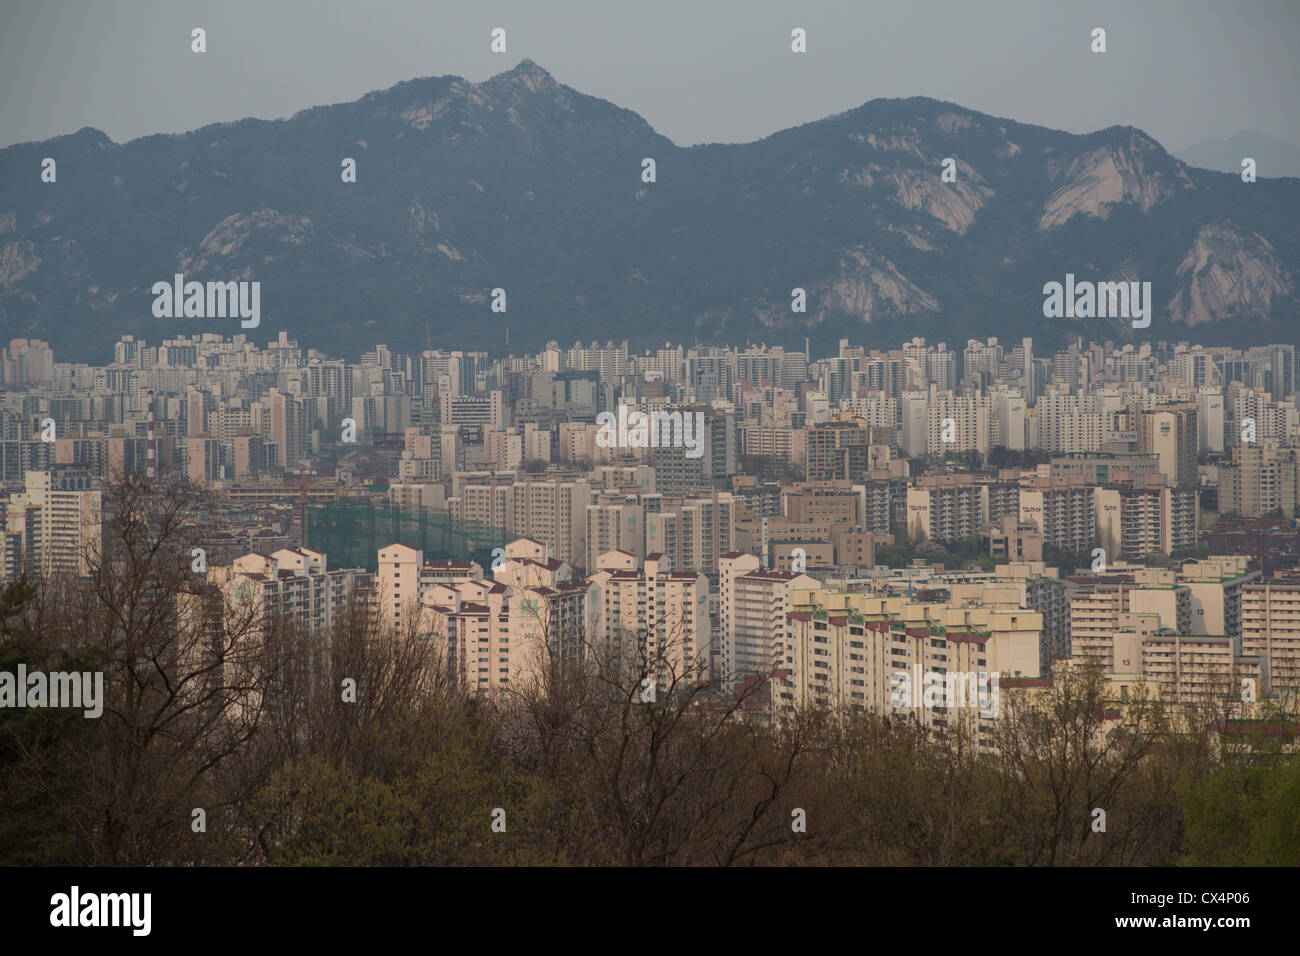 Hundreds of high rise apartment buildings crowded together near the mountains in Seoul, South Korea - Stock Image